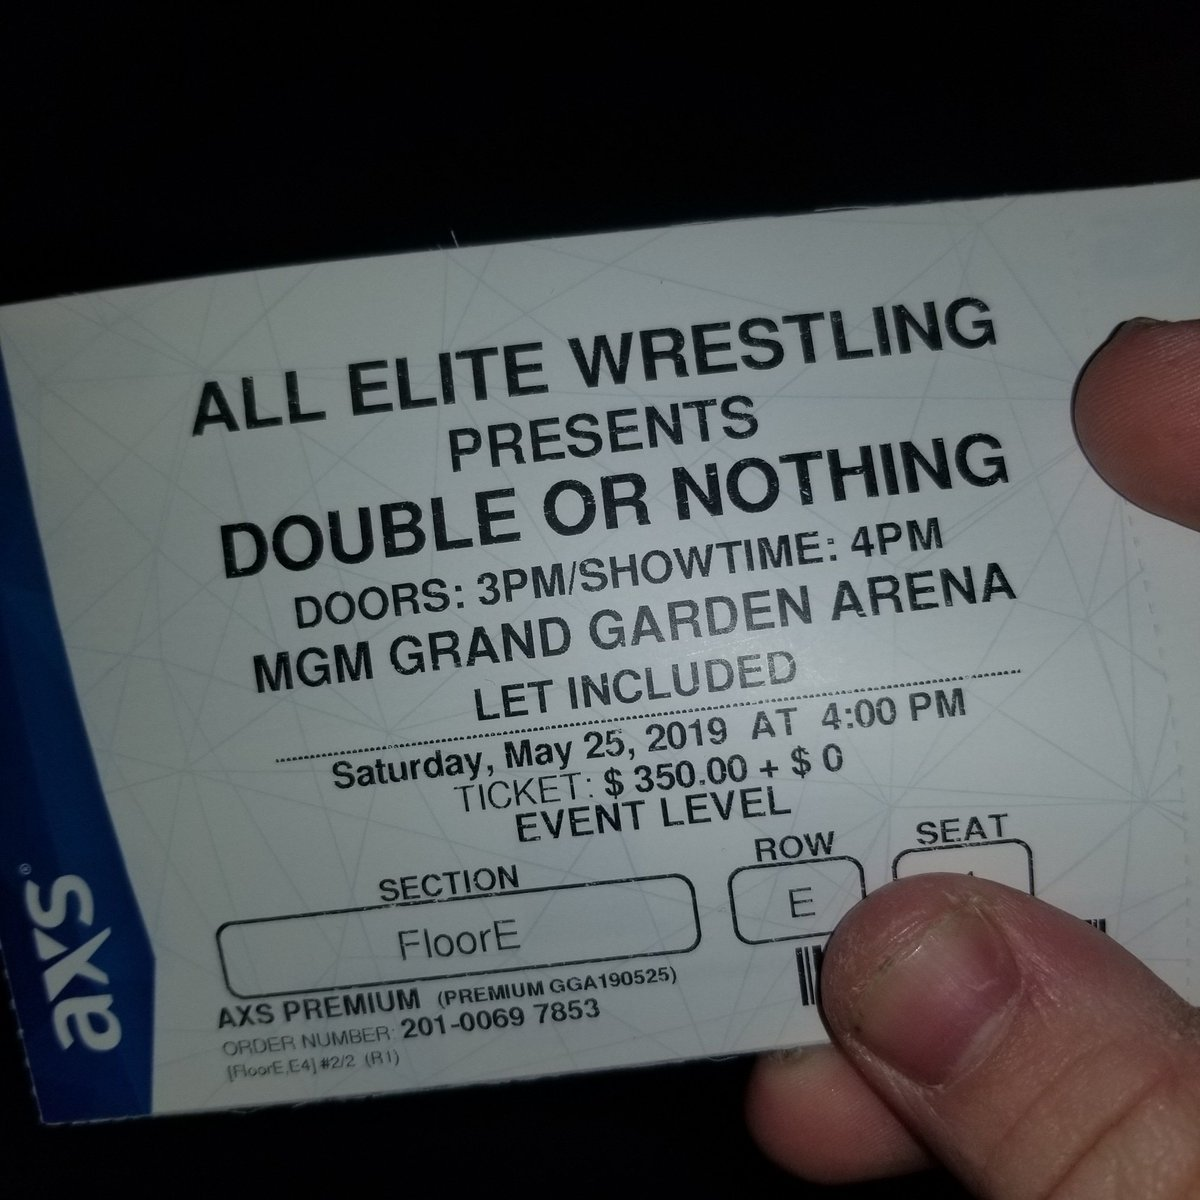 Look what came today my #DoubleOrNothing  tickets  @AEWrestling  #ThisIswrestling  can not wait https://t.co/yLhYhXkphs